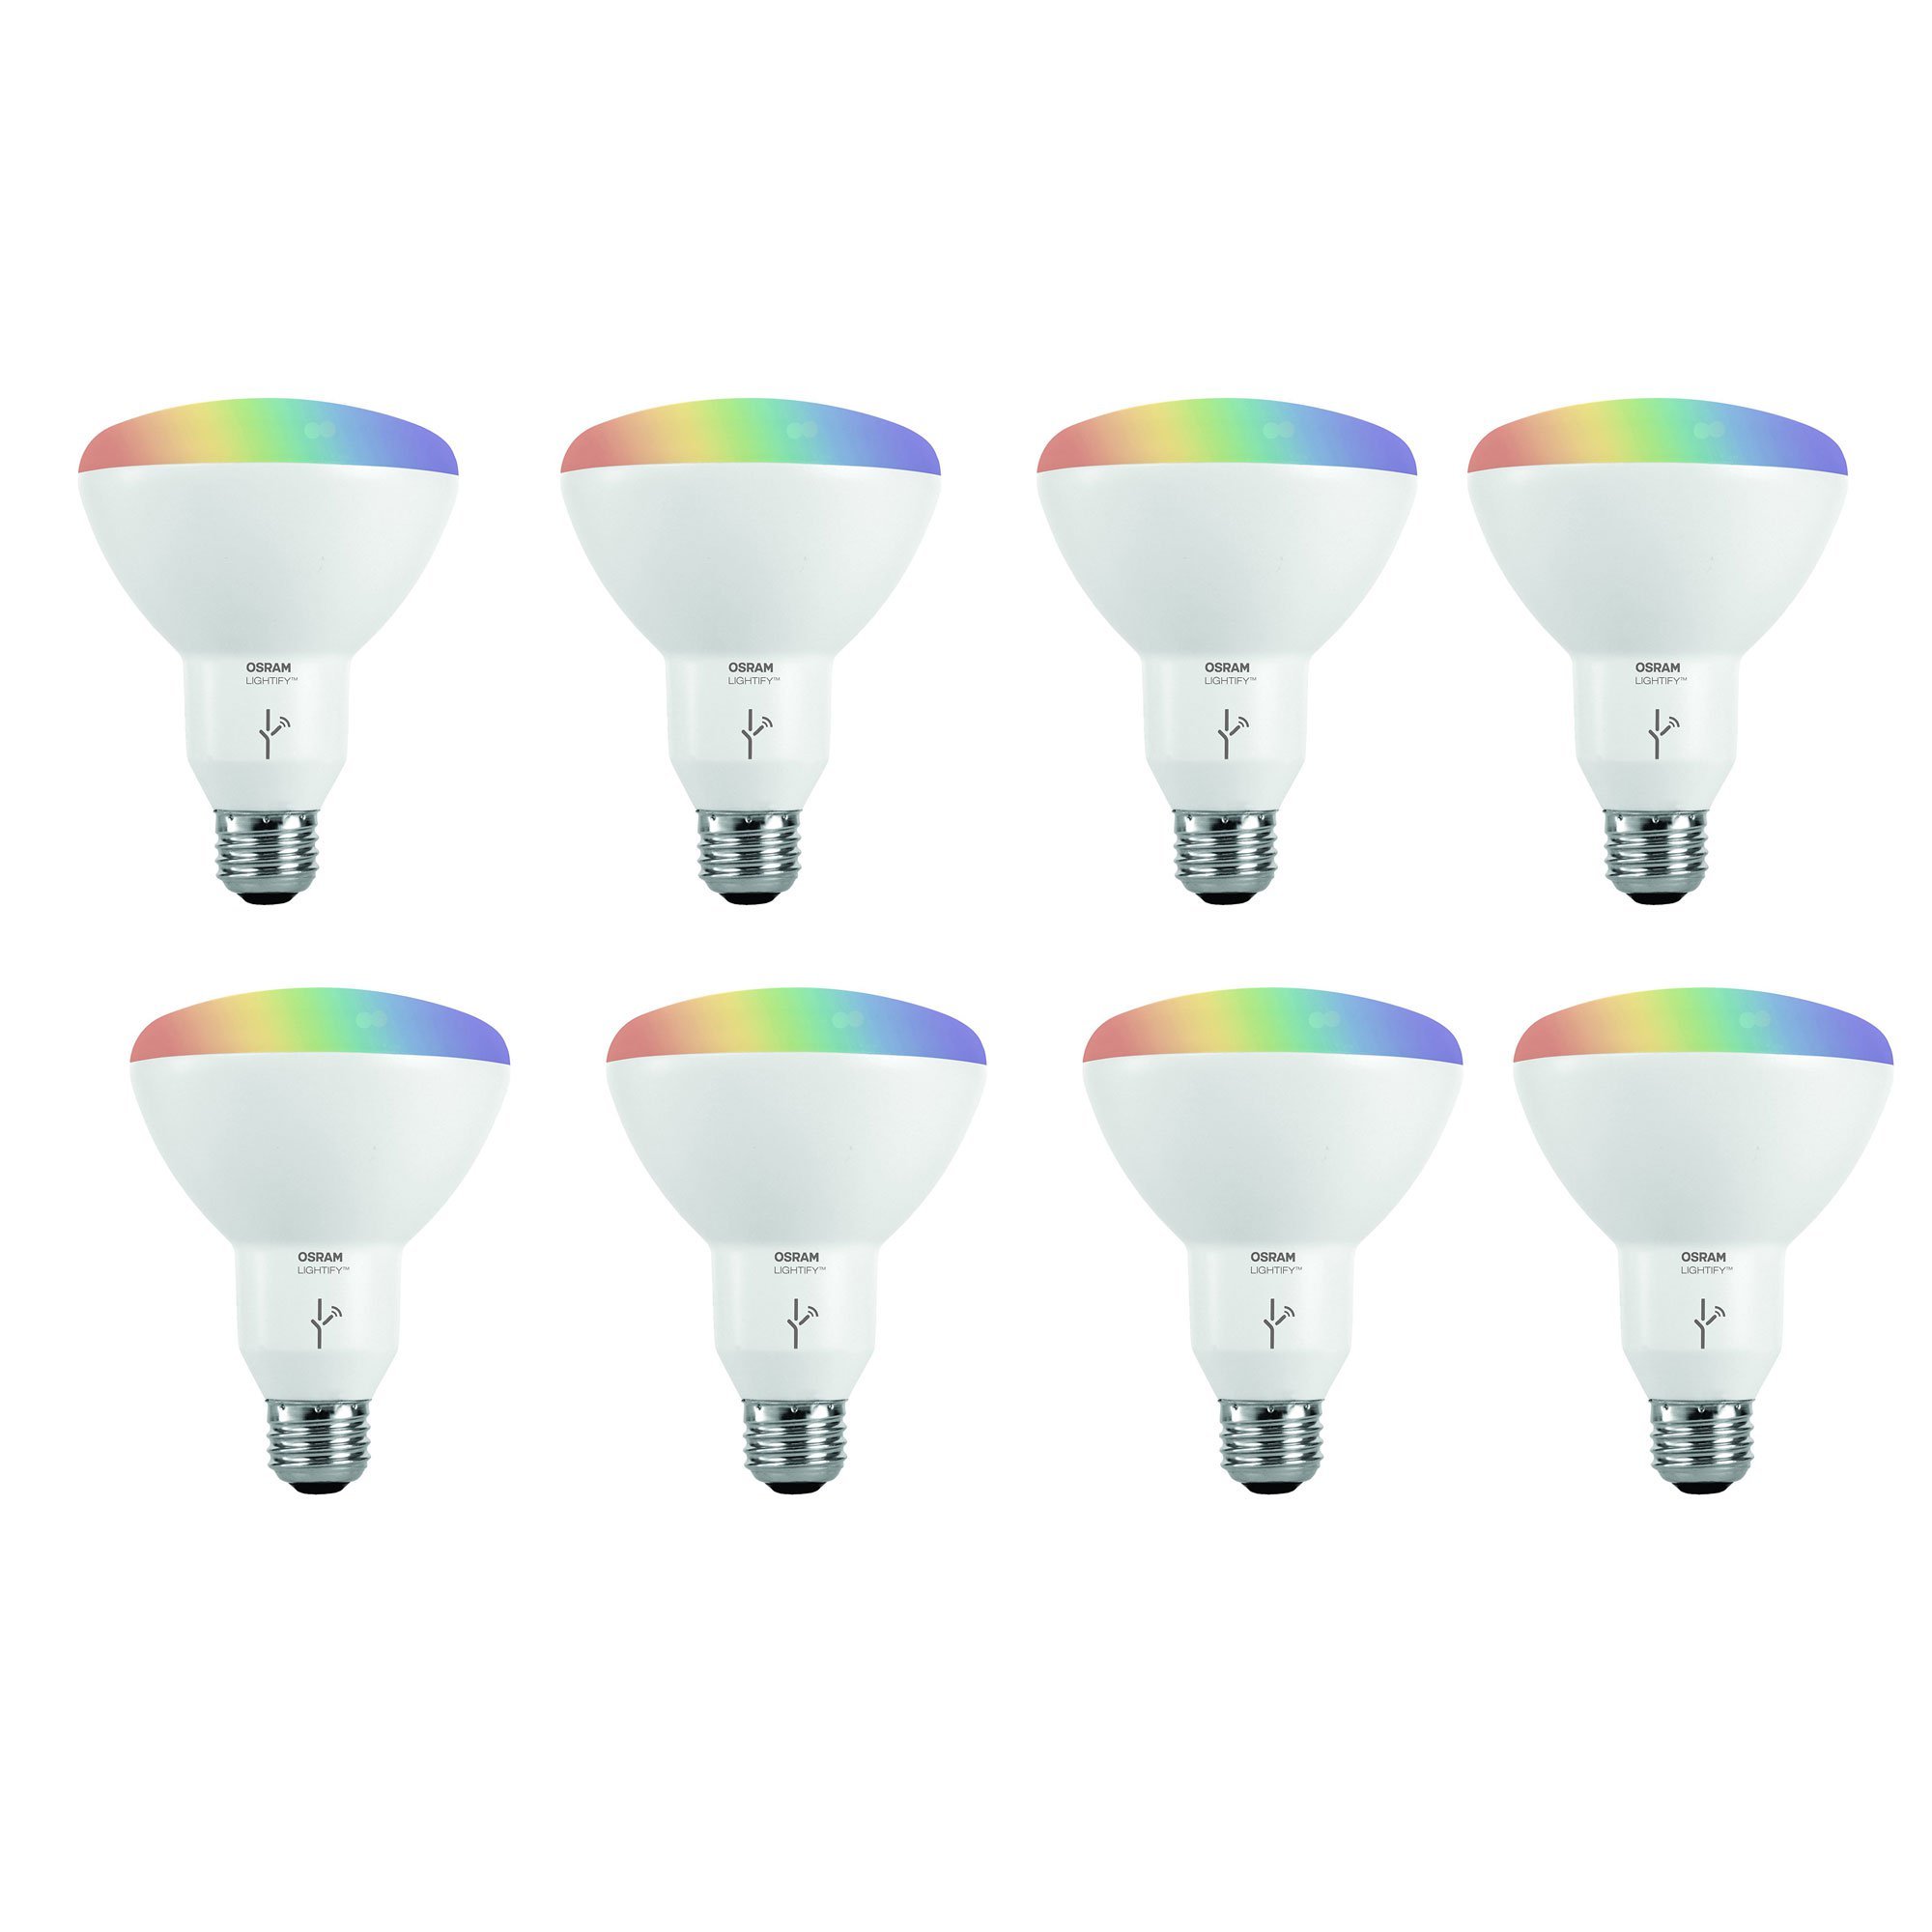 Sylvania Osram Lightify Smart Home 65W BR30 White/ Color LED Light Bulb (8 Pack)